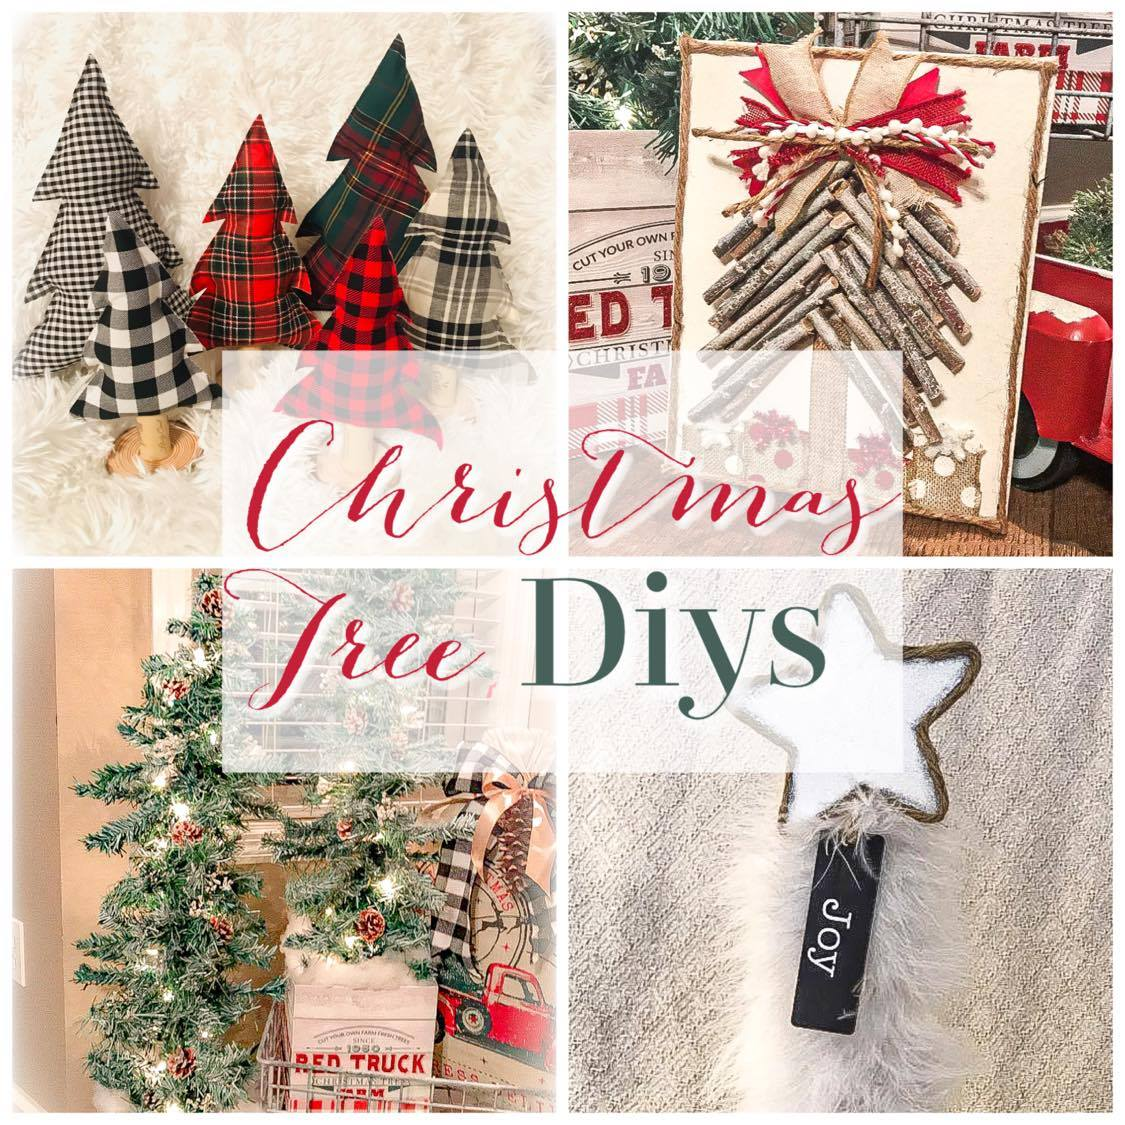 Top Christmas Tree DIYs for the Frugal Crafter!